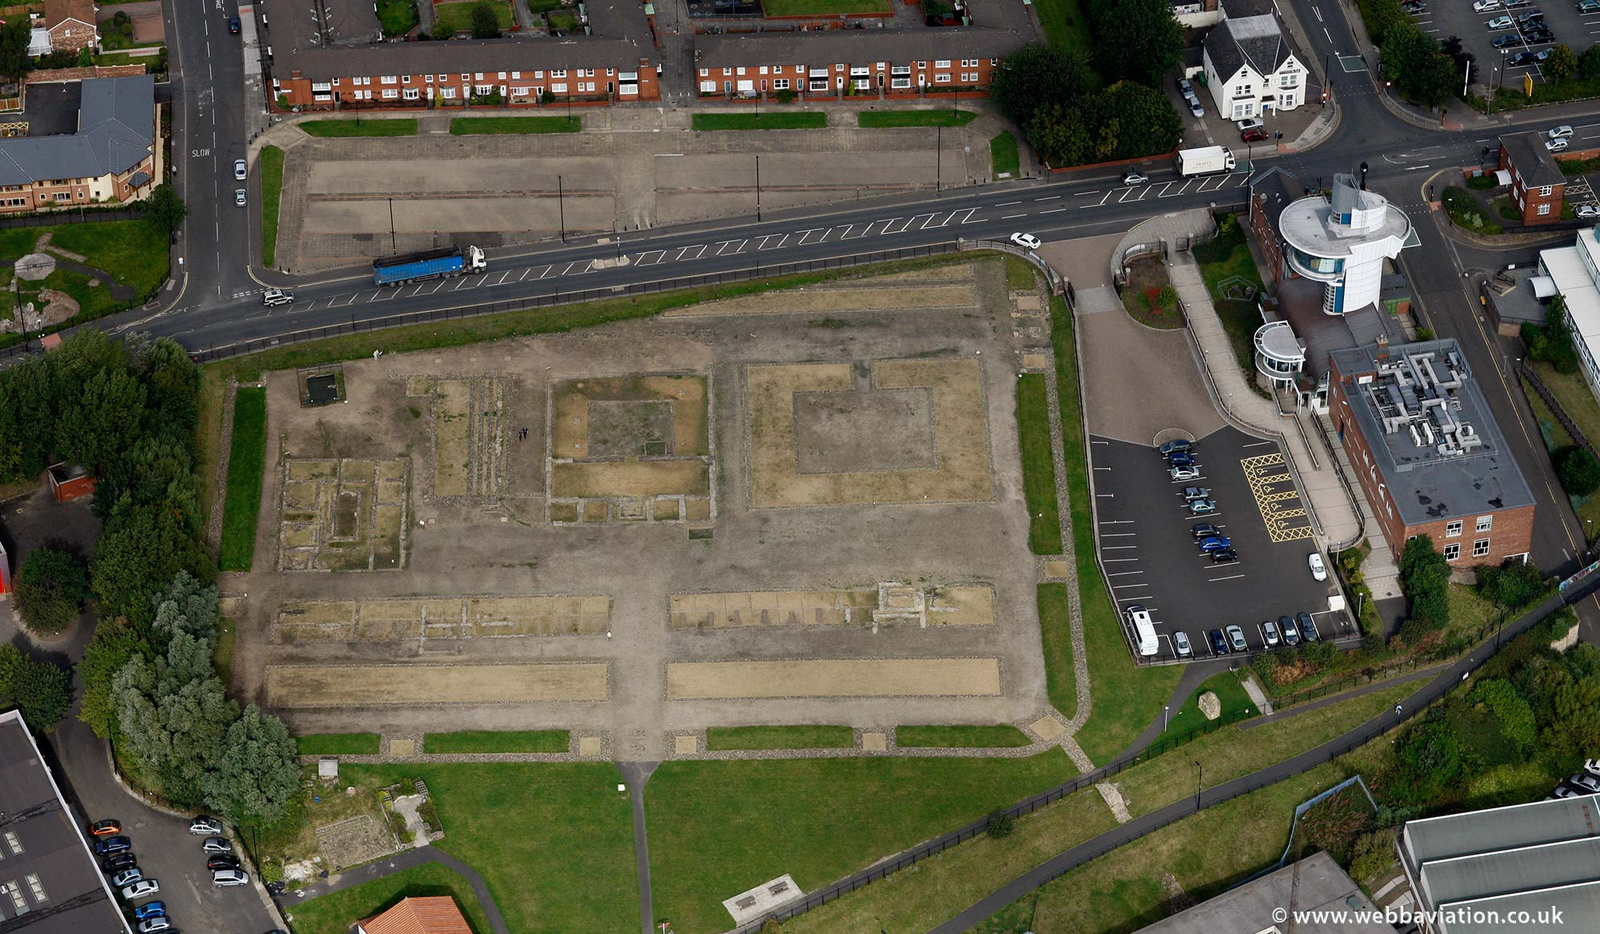 Segedunum Roman fort Wallsend from the air